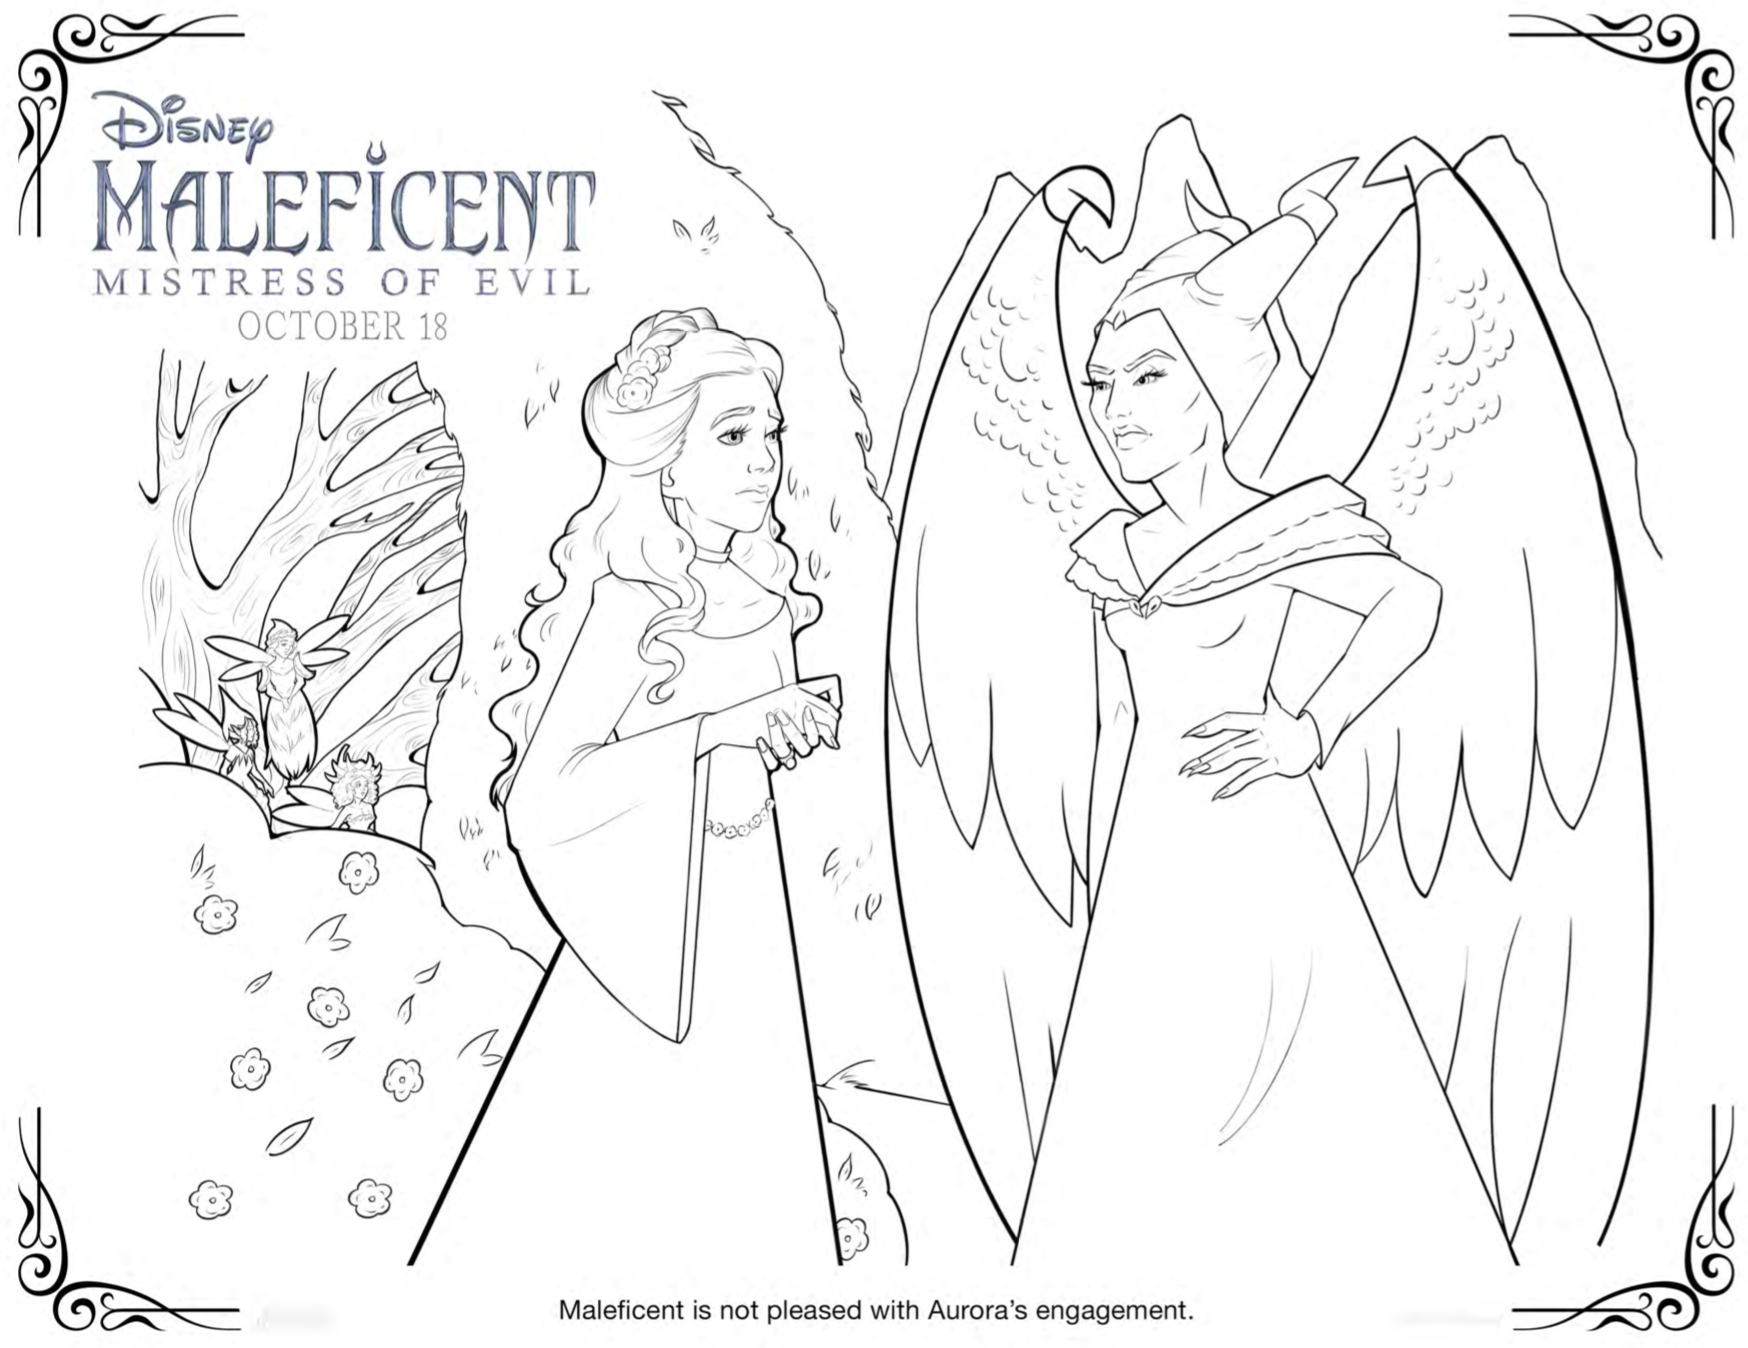 maleficent mistress of evil party ideas diy headband coloring sheets and recipes in 2020 maleficent coloring books dark disney maleficent mistress of evil party